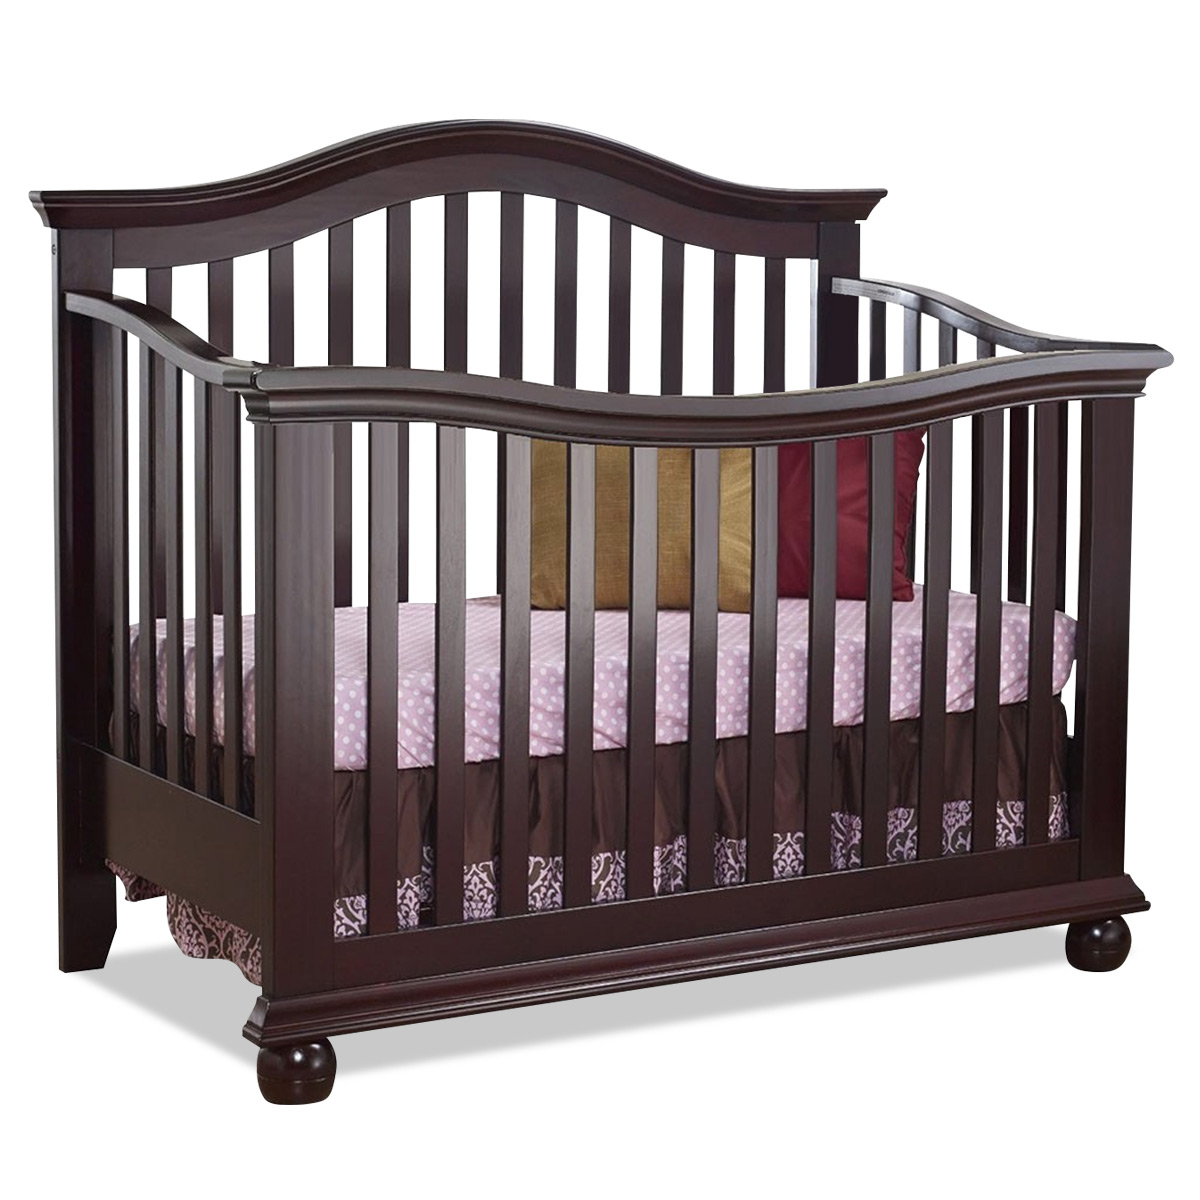 Find Every Shop In The World Selling Sorelle Verona Crib Changer